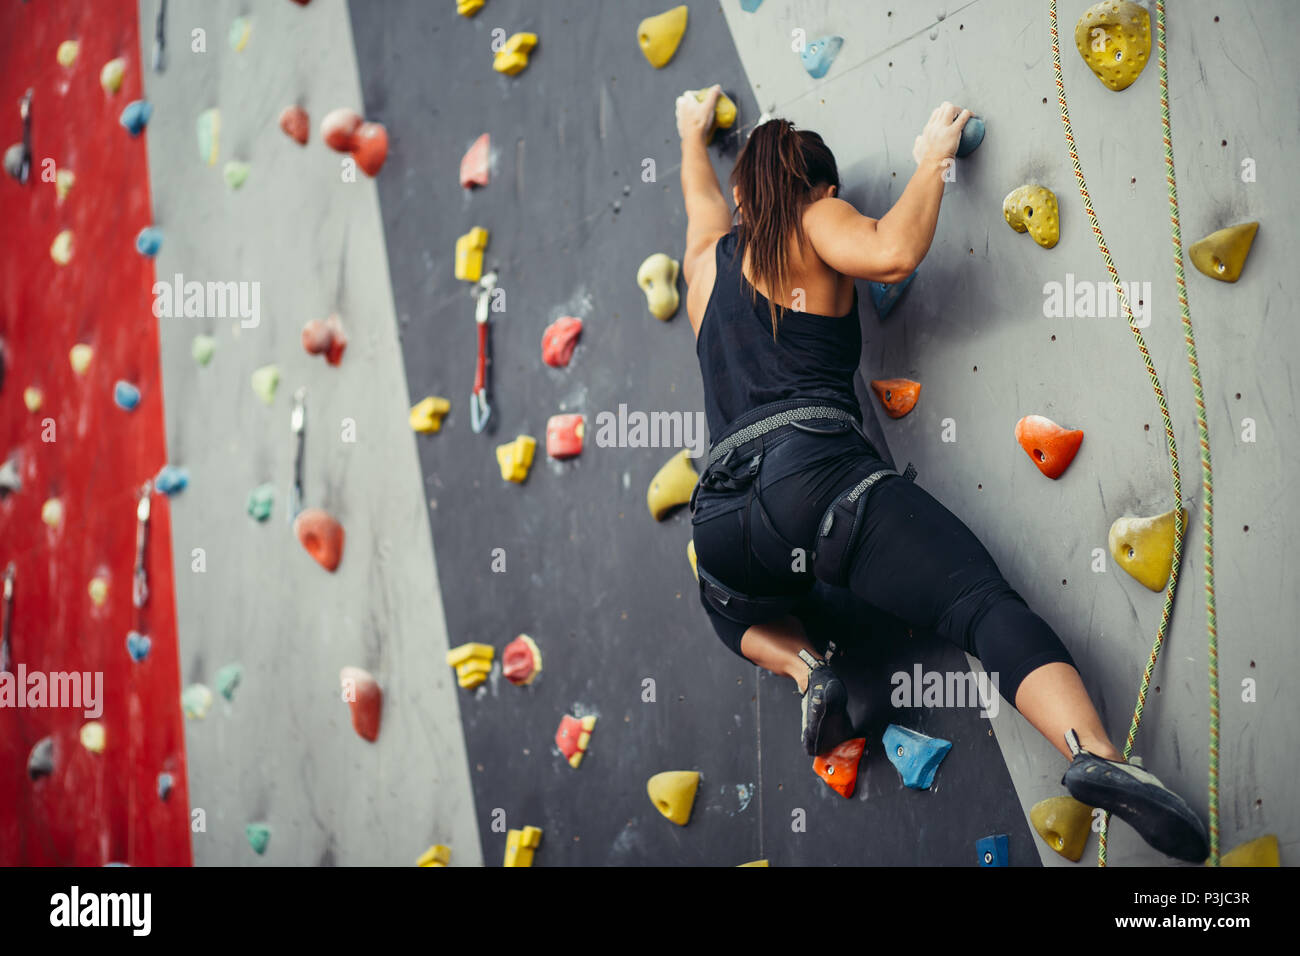 Sporty young woman training in a colorful climbing gym. - Stock Image